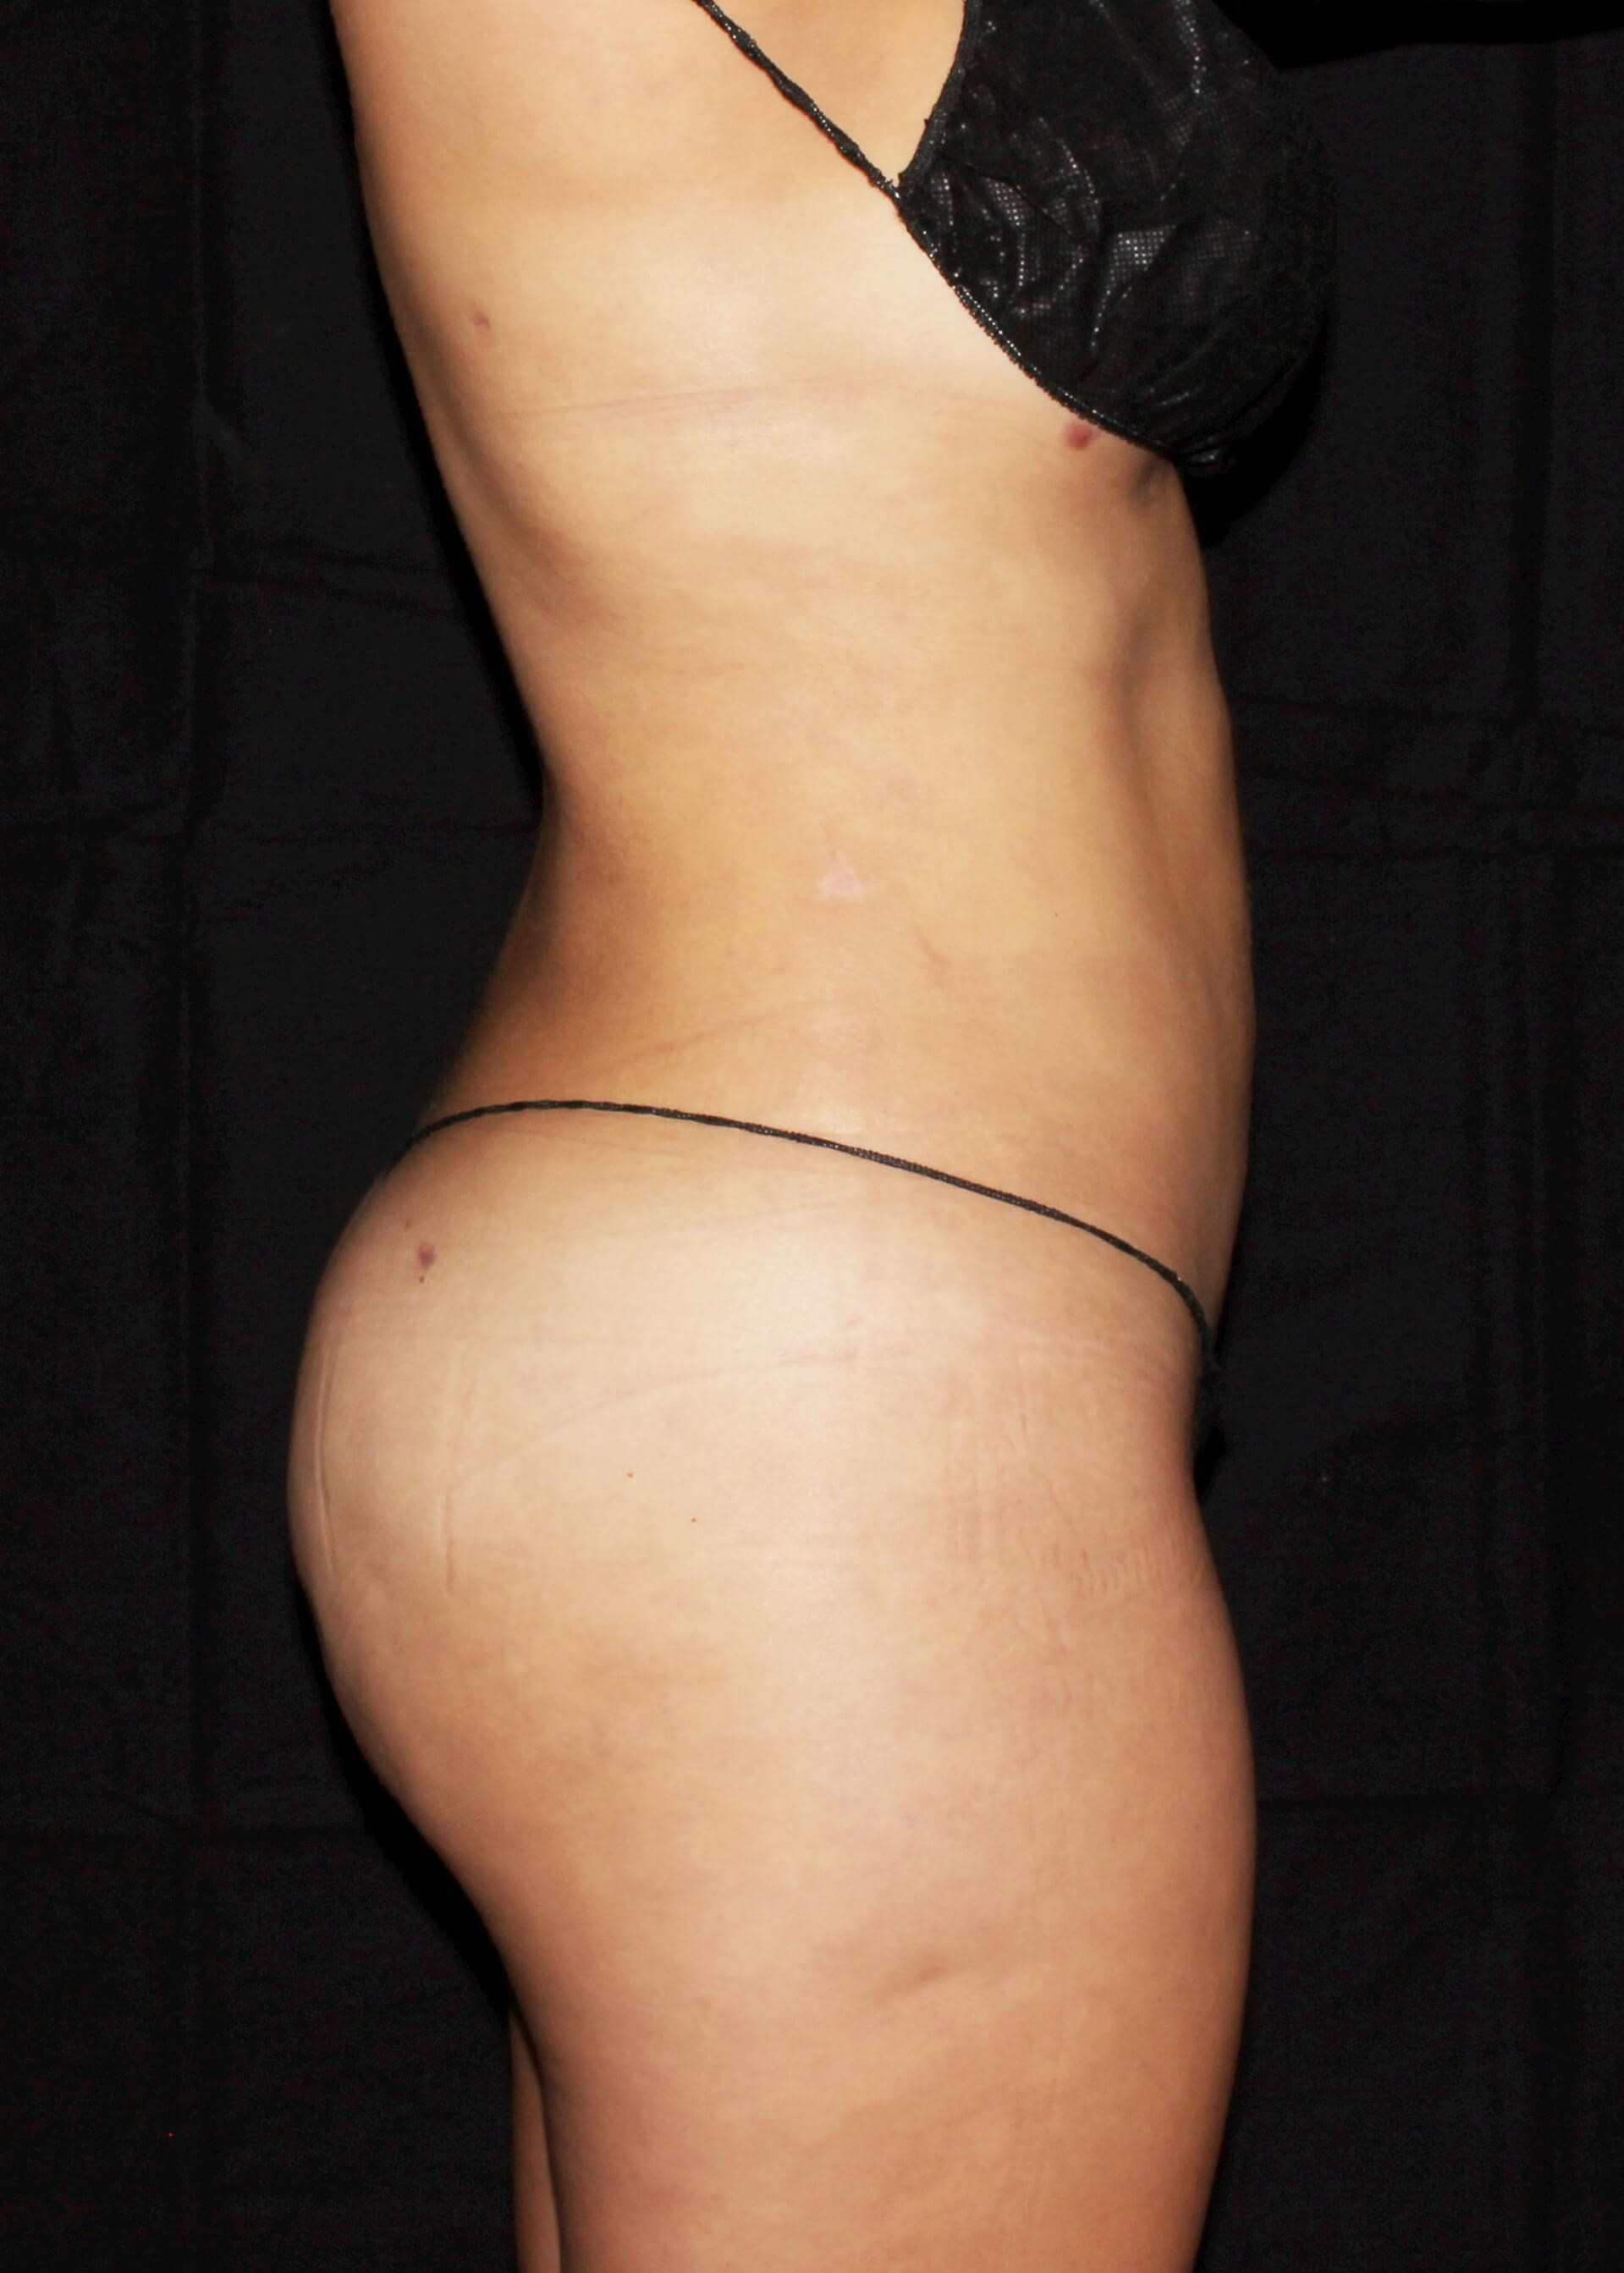 Full Torso Liposuction After - RIGHT SIDE VIEW